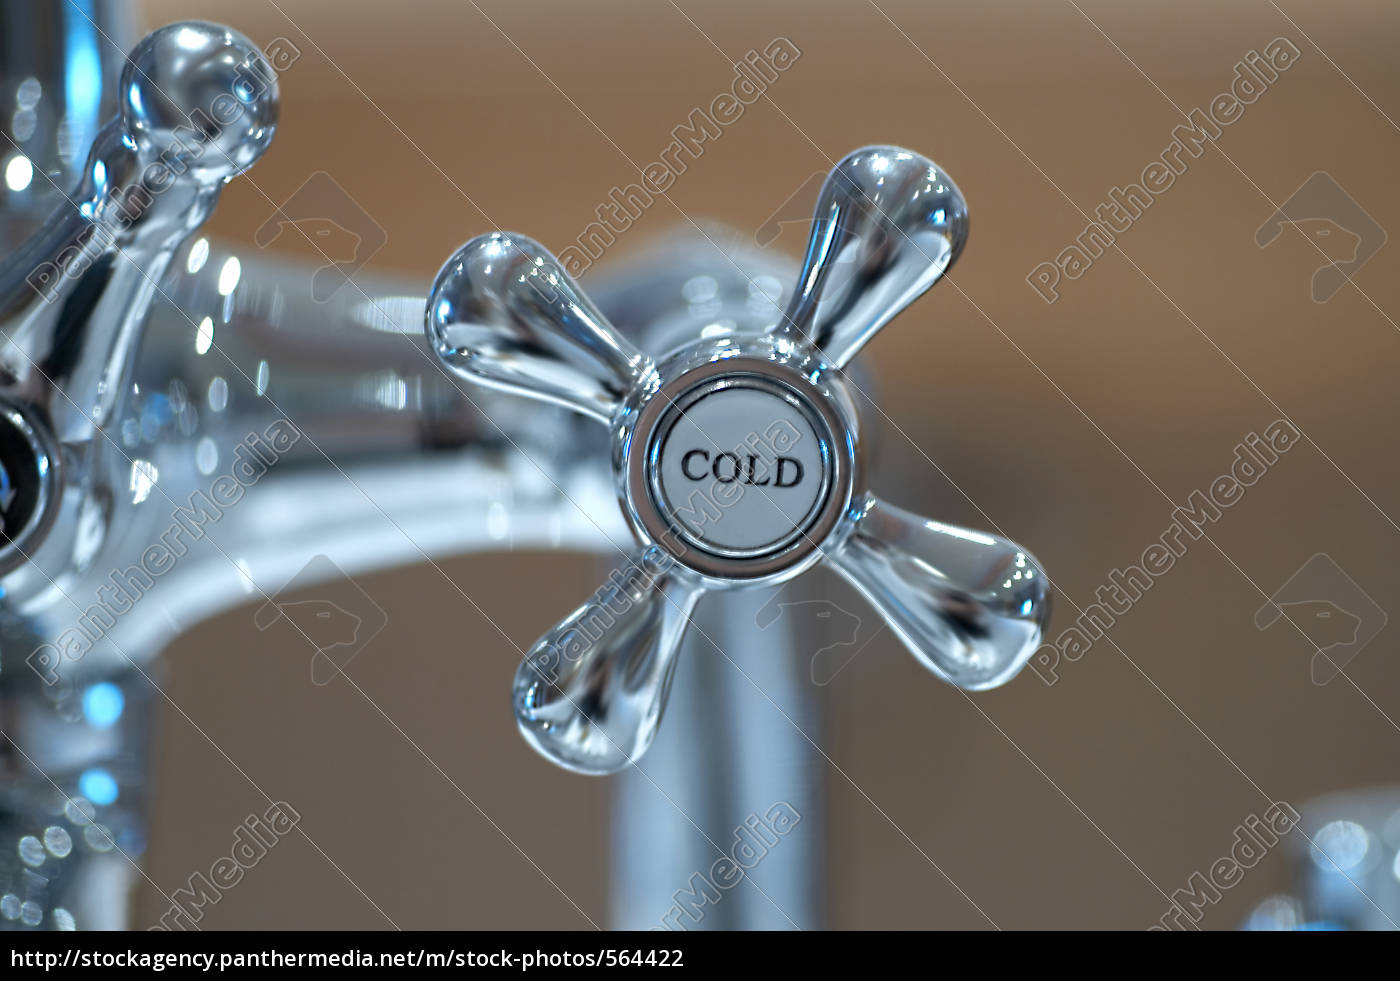 faucet, cool, -, cold - 564422